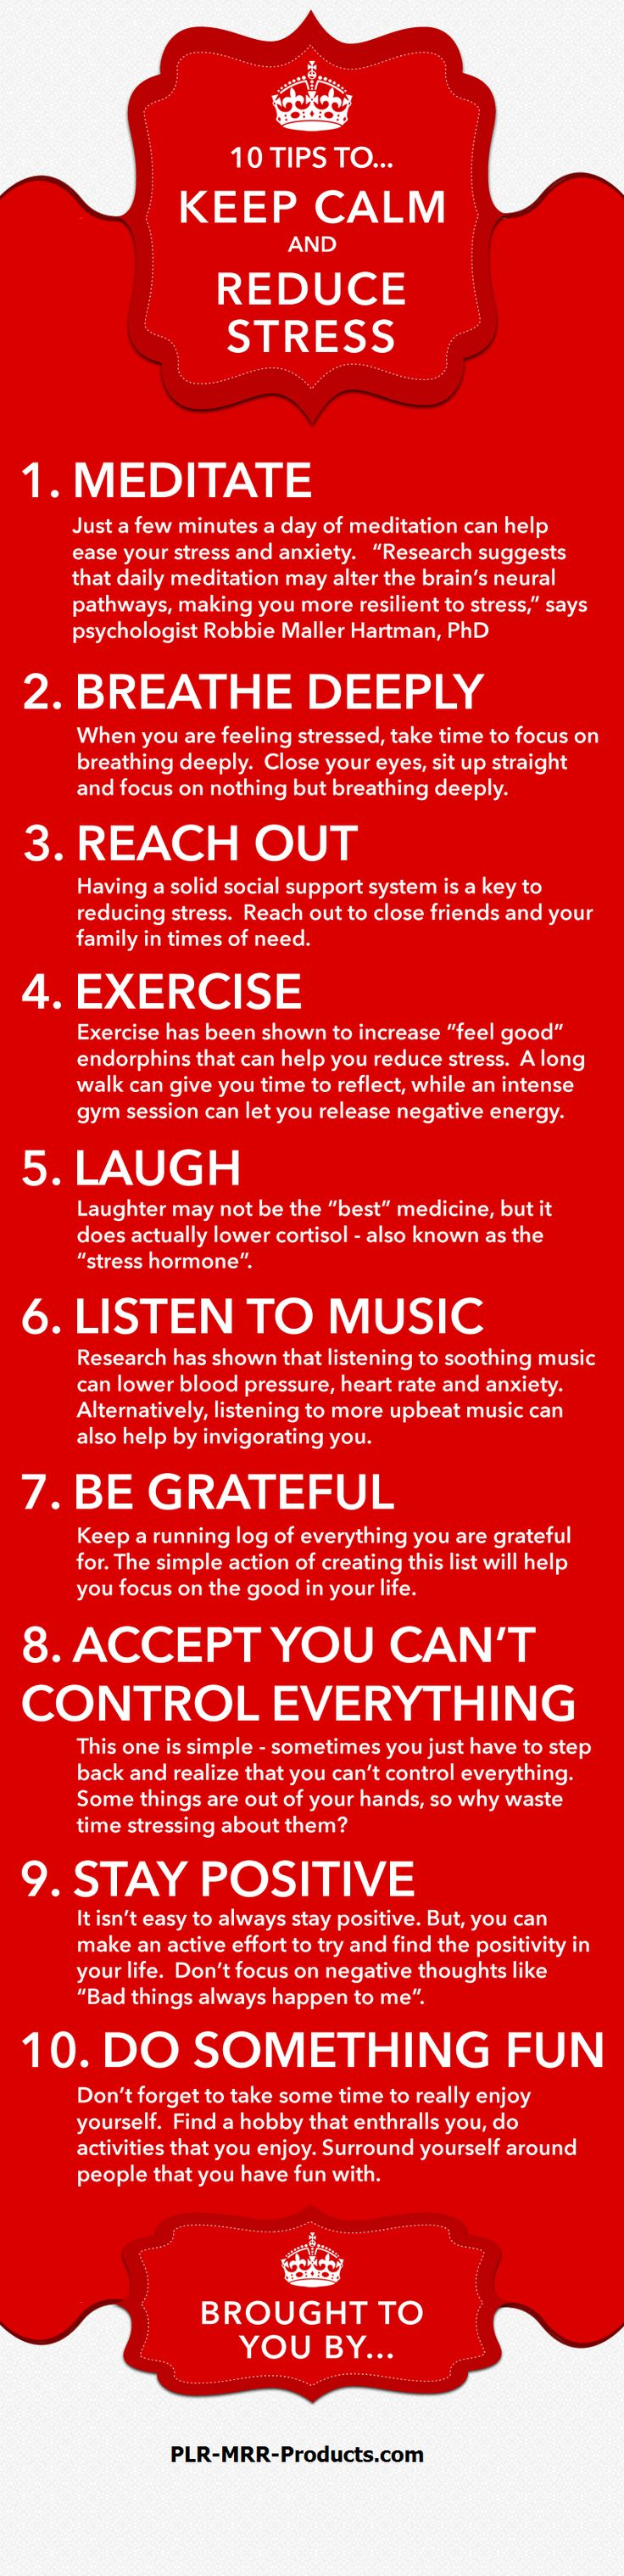 10 tips to stay calm and reduce stress